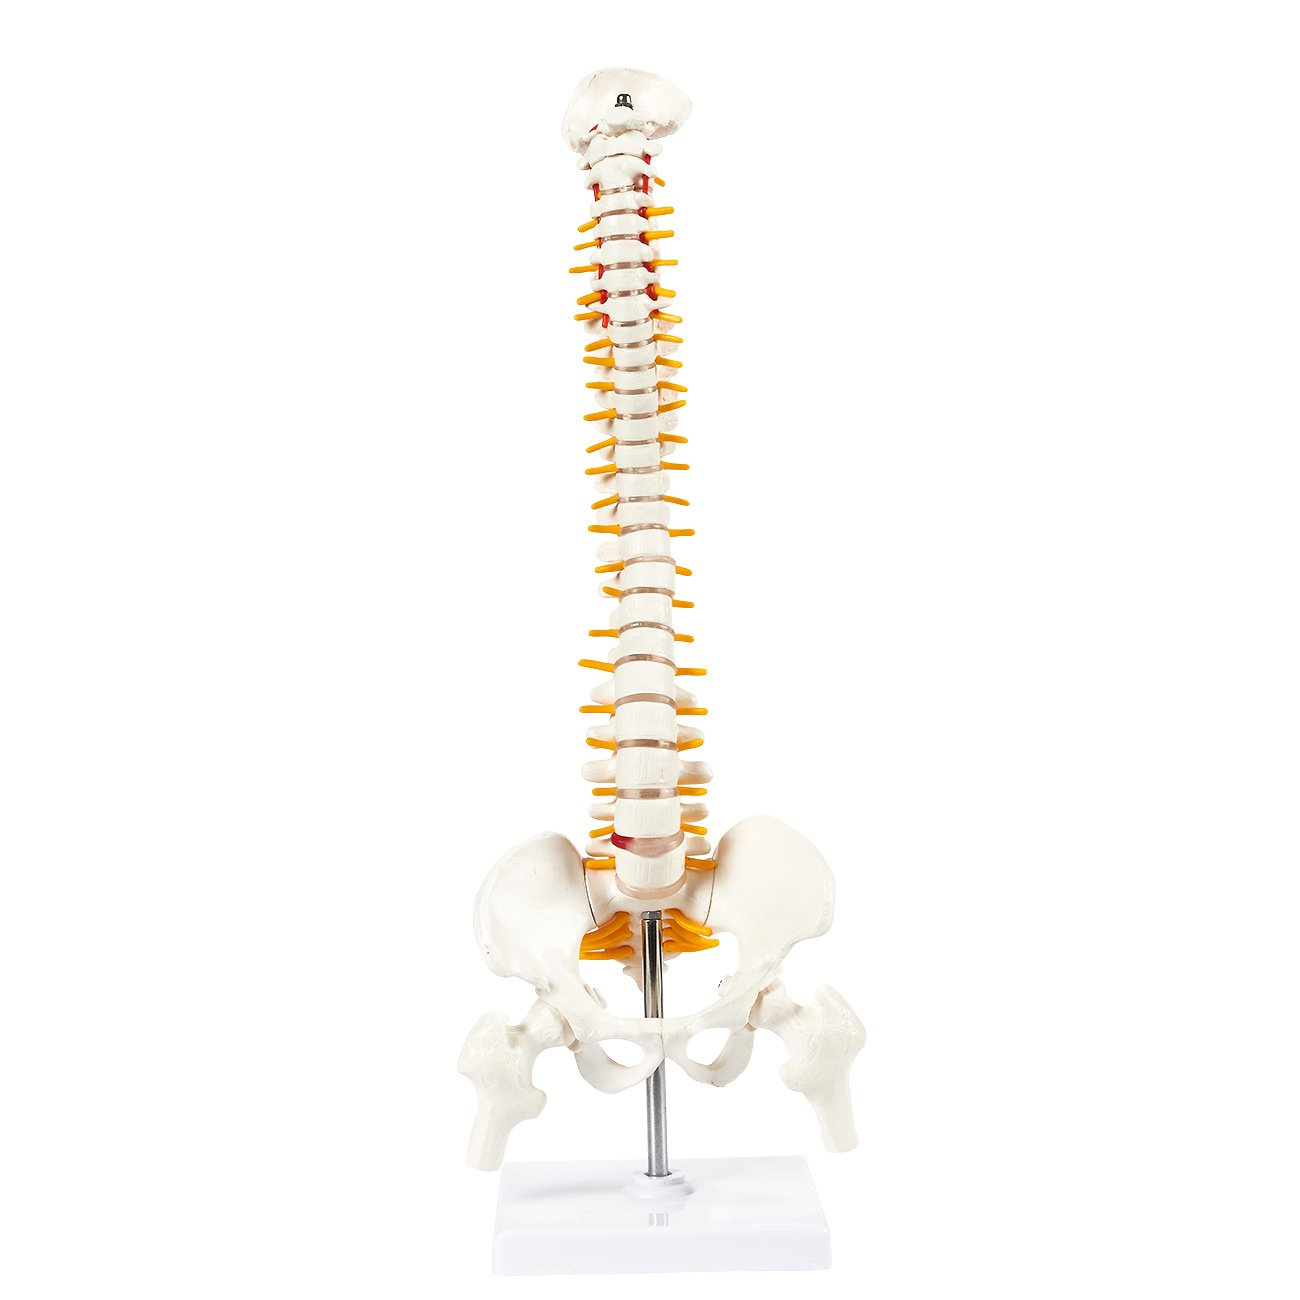 Spine Model - Human Vertebra Model, Vertabral Column Anatomy Model for Chiropractor and Osteopath Office, 5.1 x 17.5 x 4.7 Inches Juvale